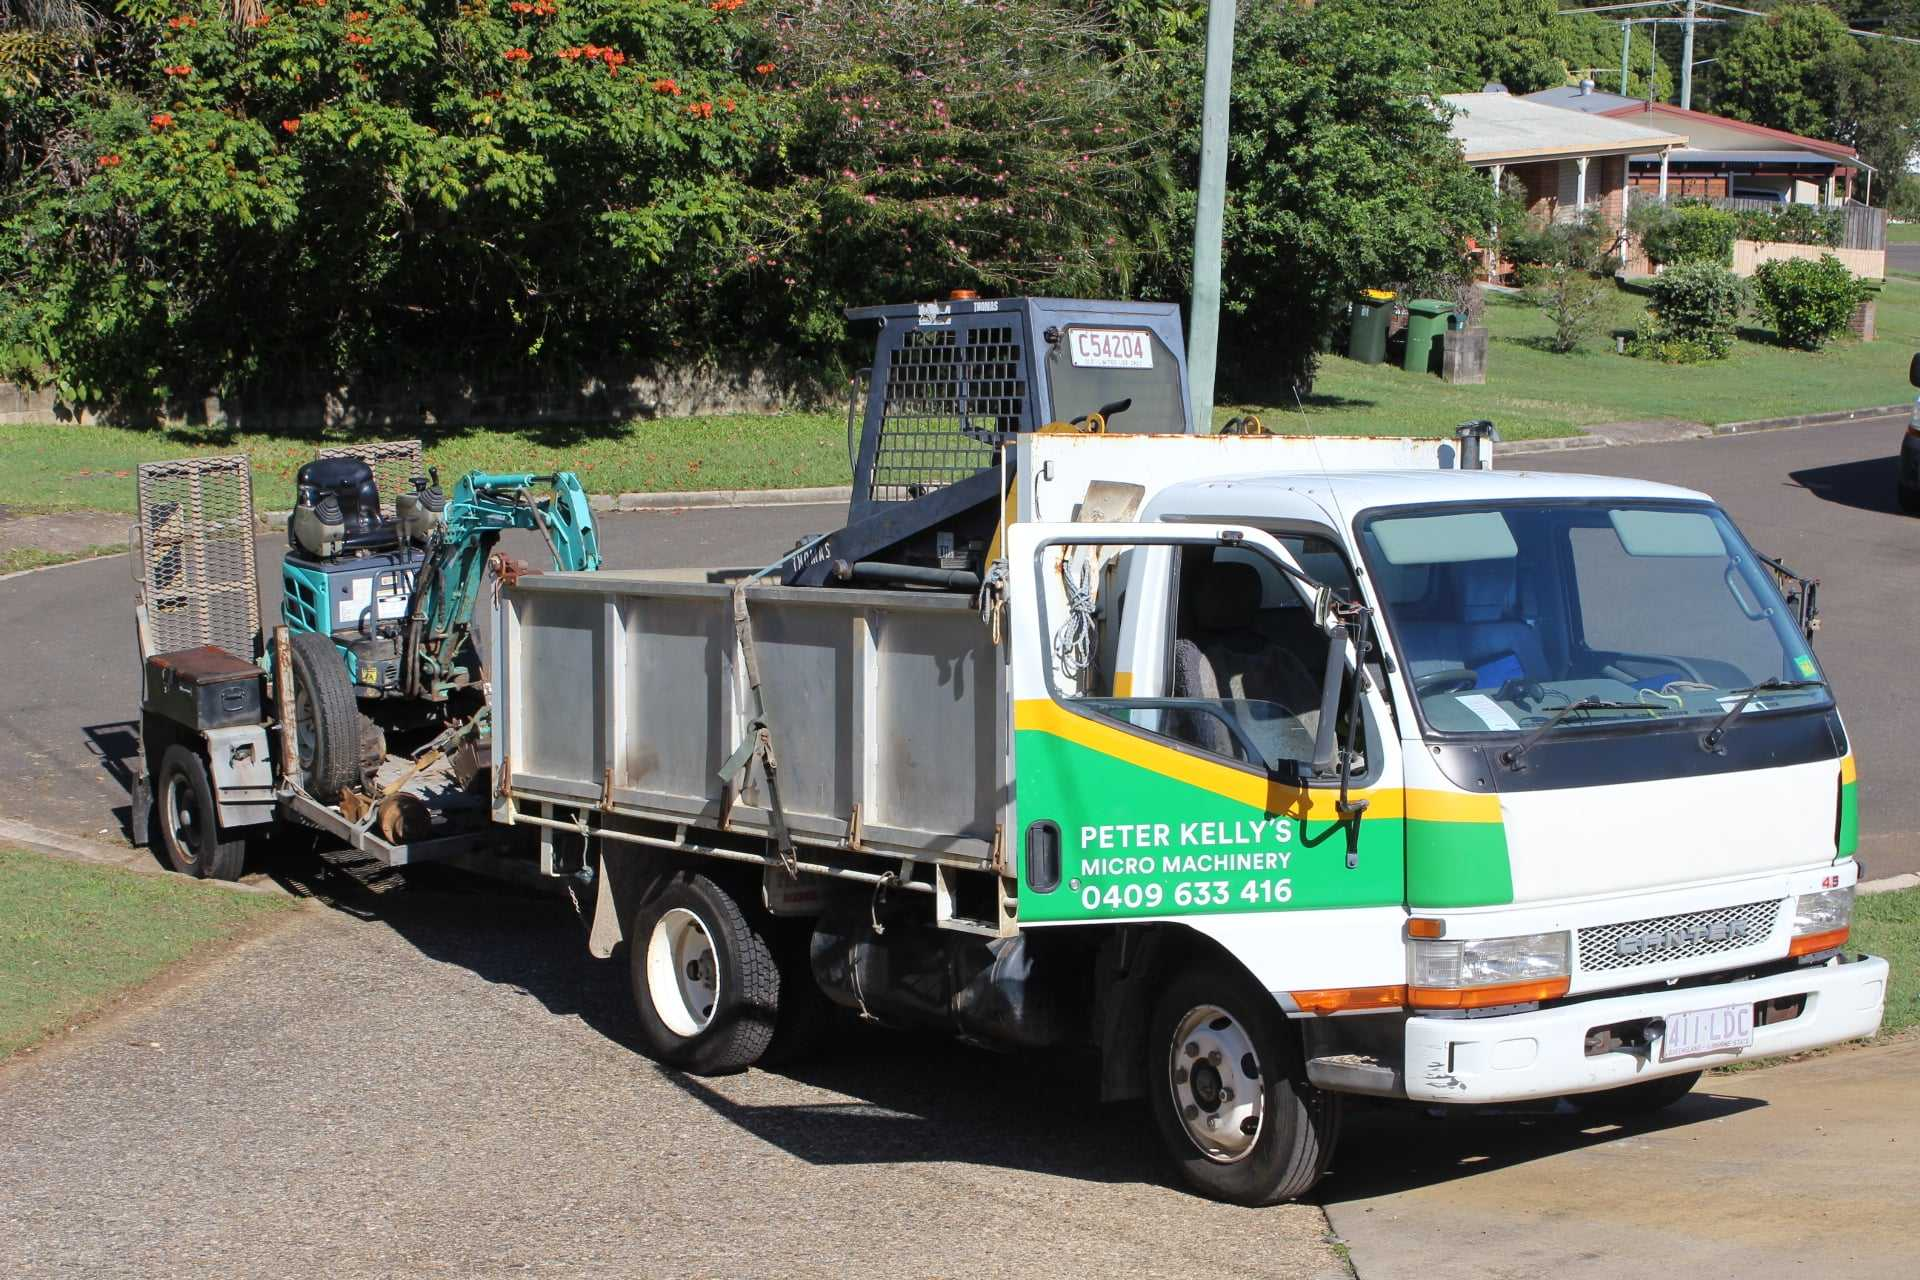 1 tonne excavator, skid steer loader, and 4.5 tonne tipper combo for wet hire (with operator)-Parklands, Maroochy River, Marcoola, Nambour, Bli Bli, Pacific Paradise, Rosemount